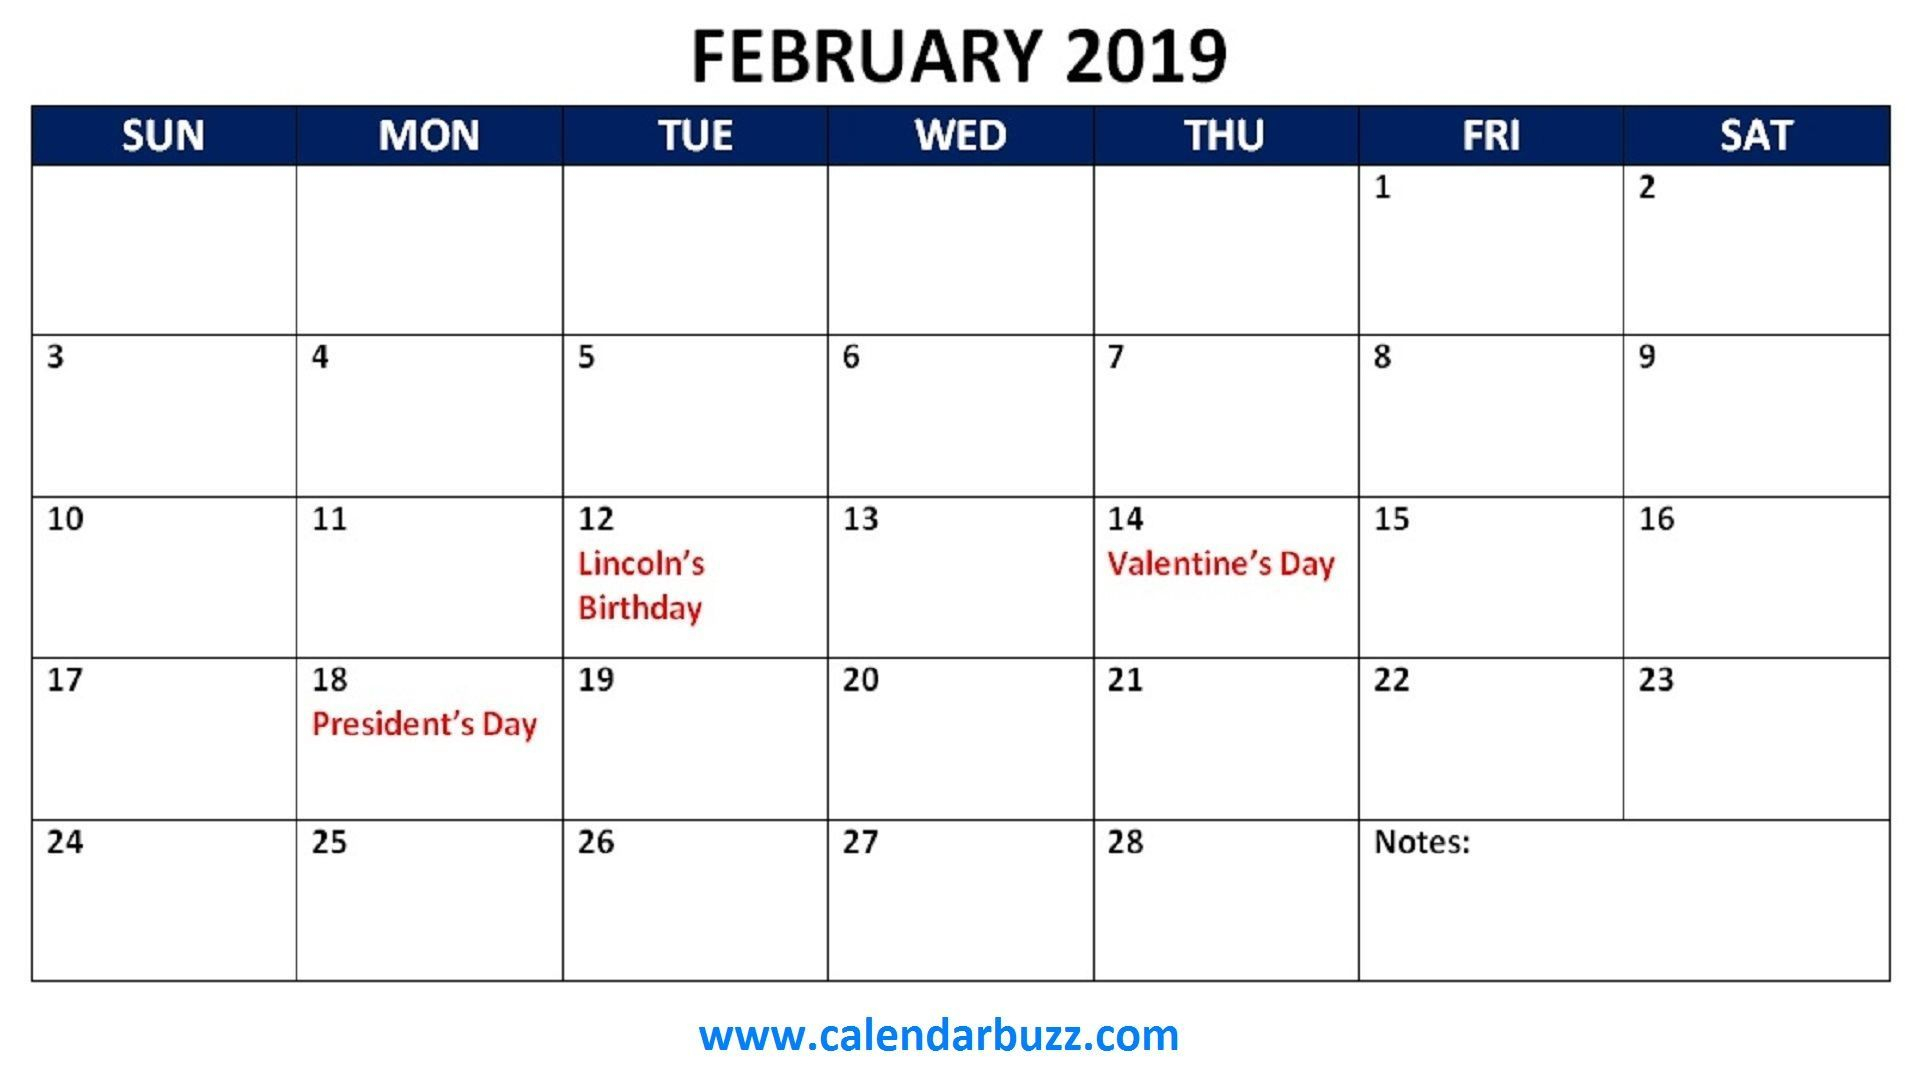 February 2019 Calendar Philippines With Holidays - Free